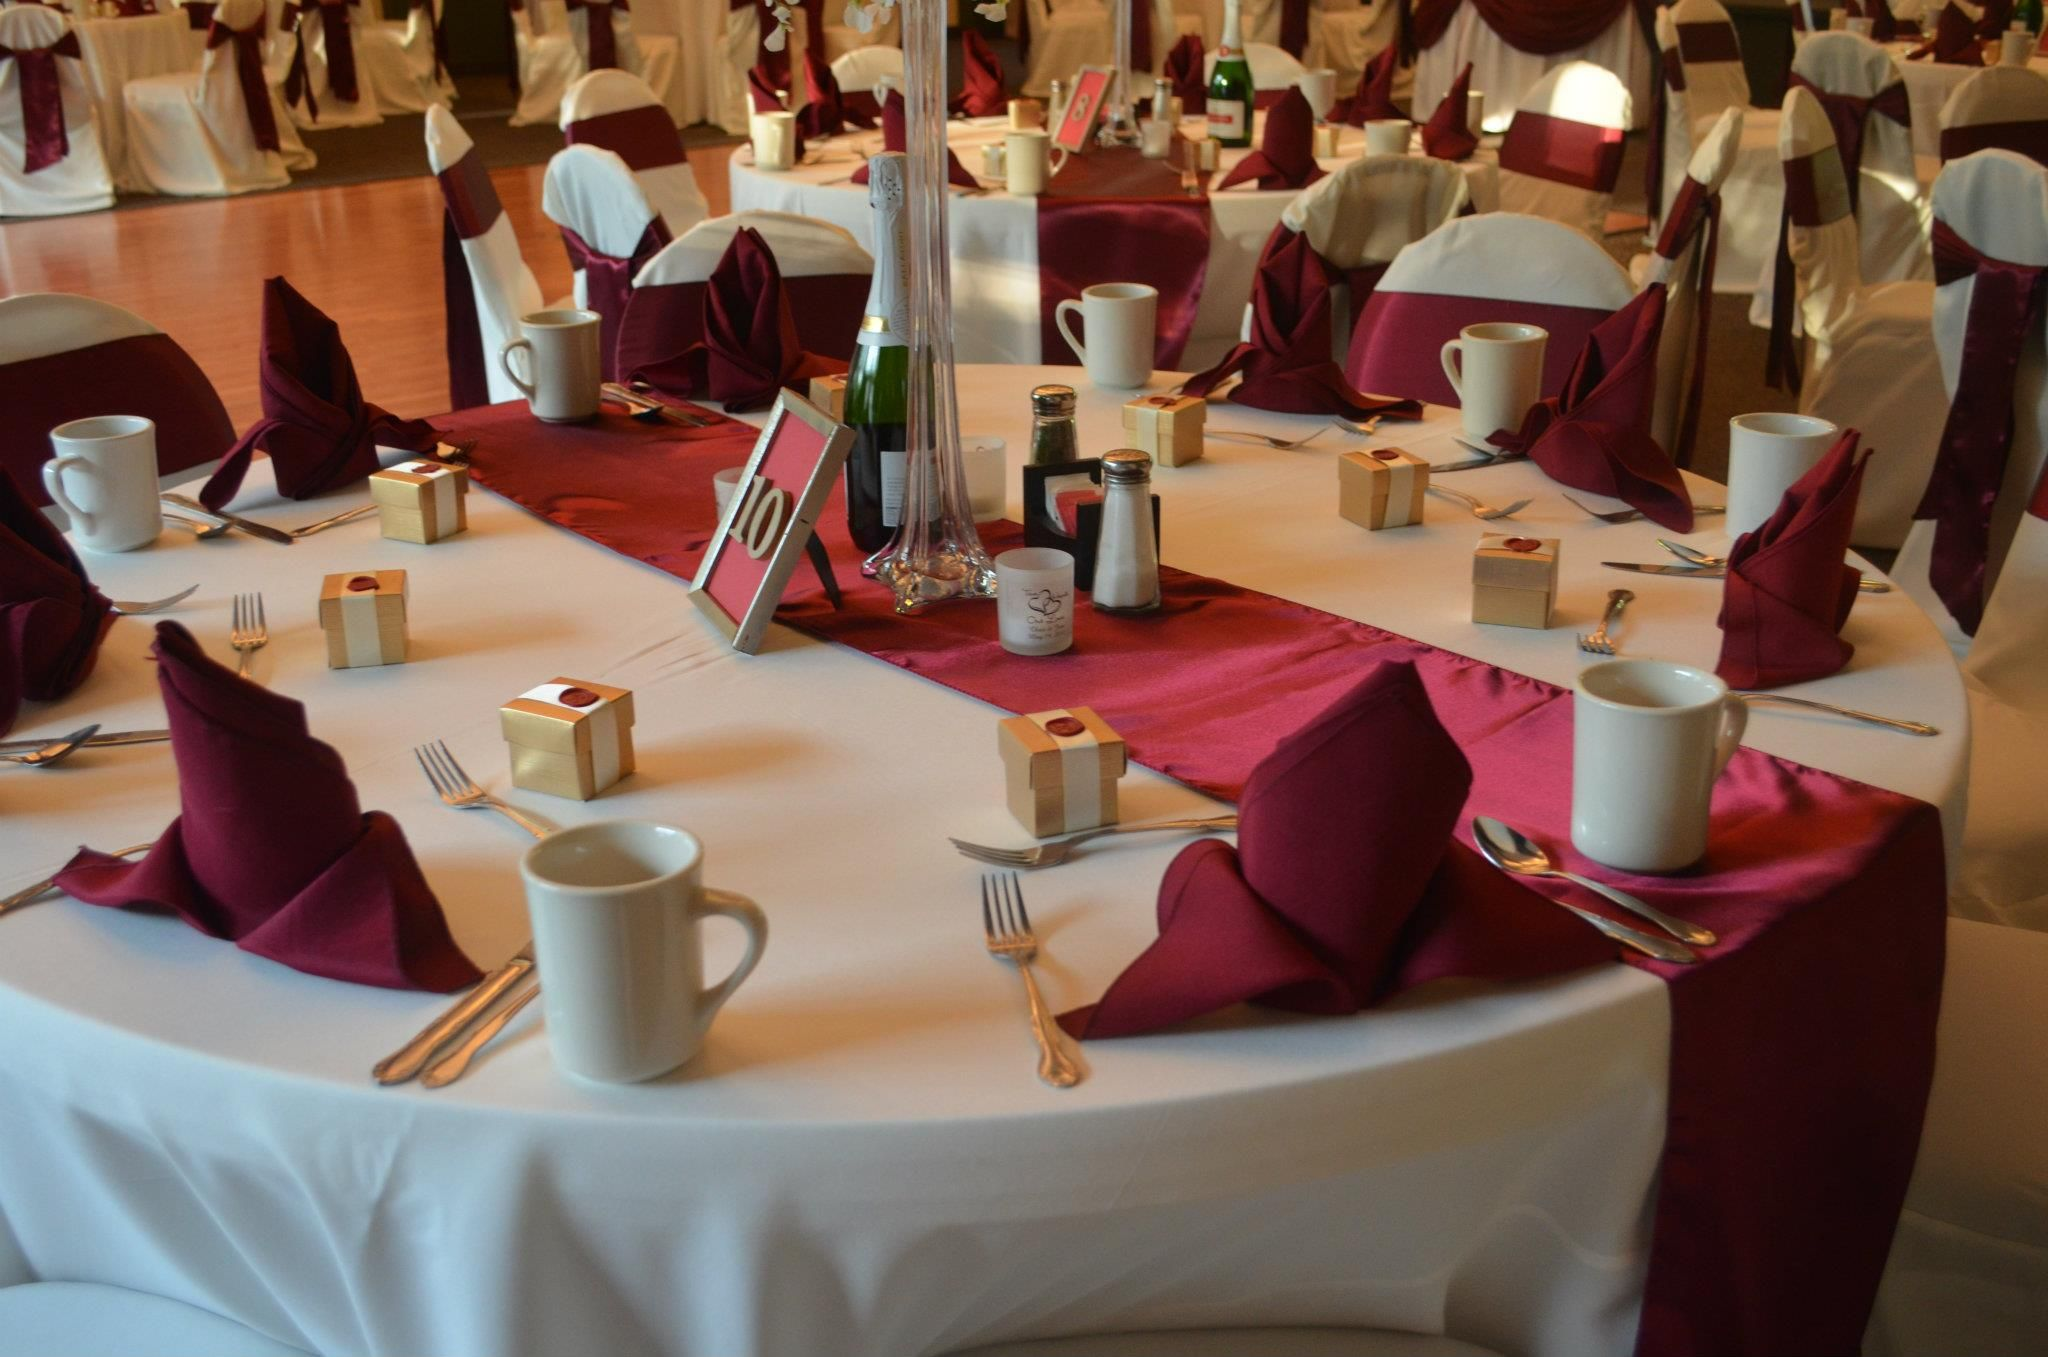 Chair Cover Rentals Dc Folding Rack White Banquet Covers Burgundy Satin Sashes